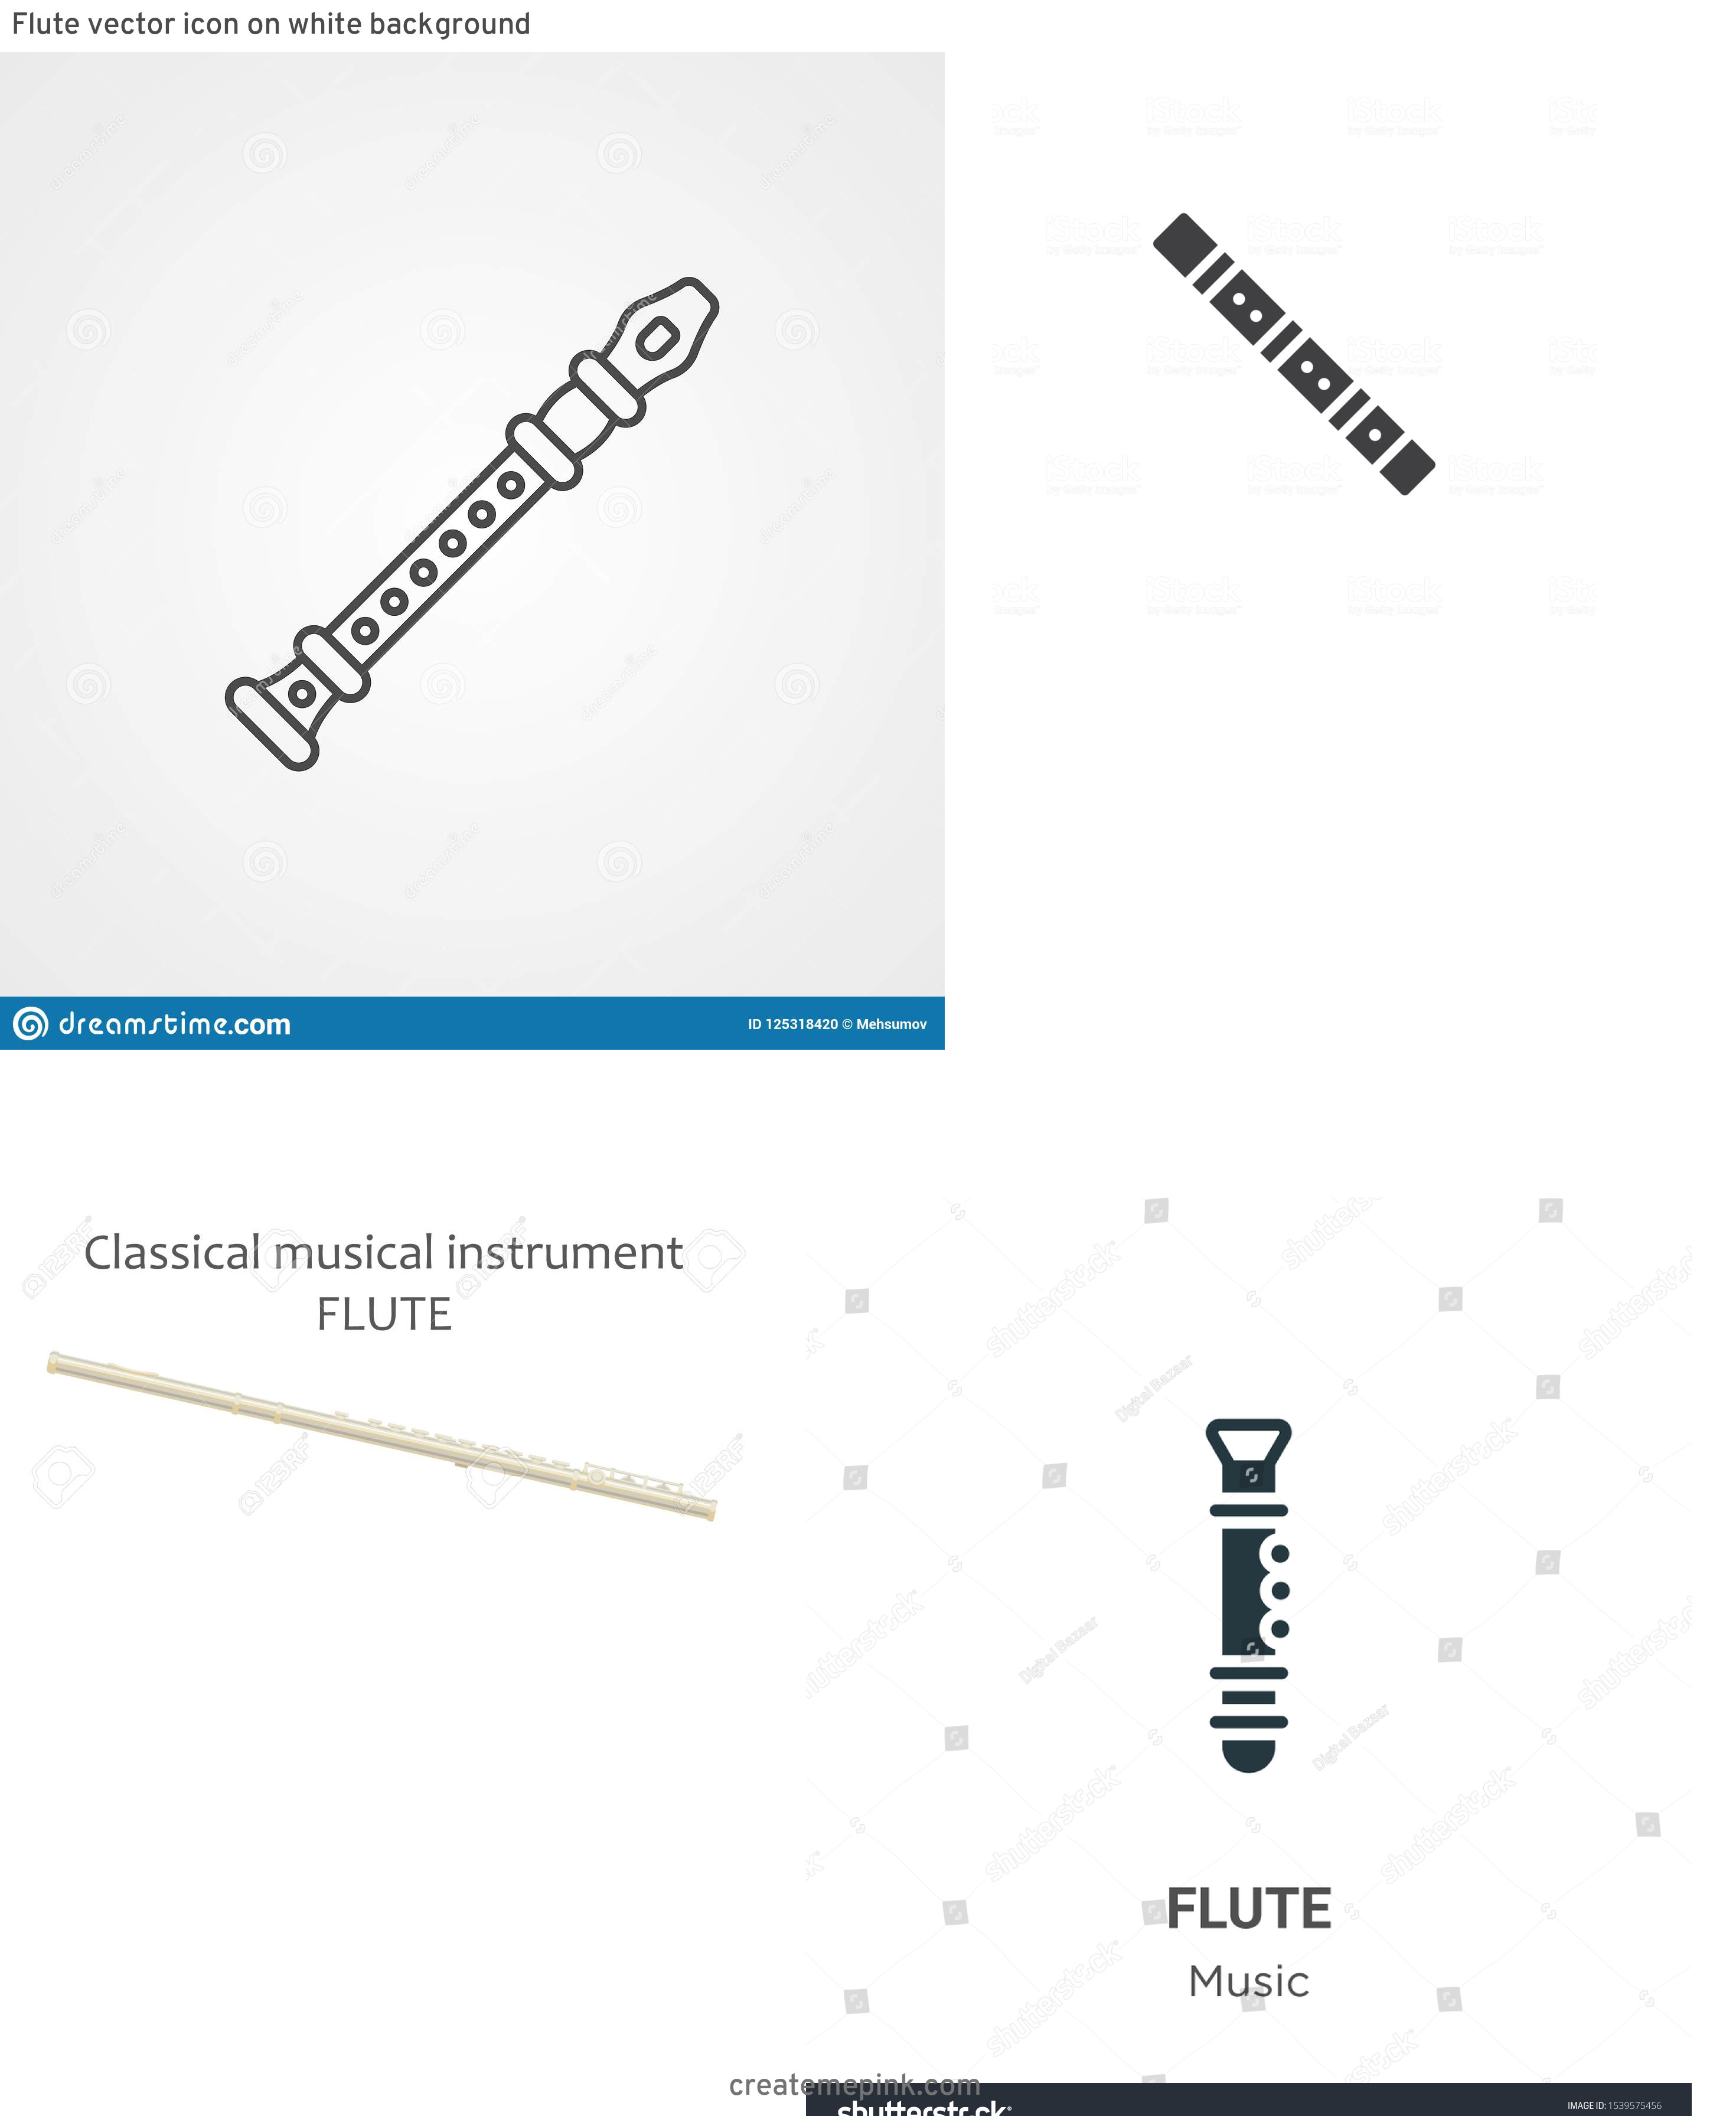 Flute Vector: Flute Vector Icon On White Background